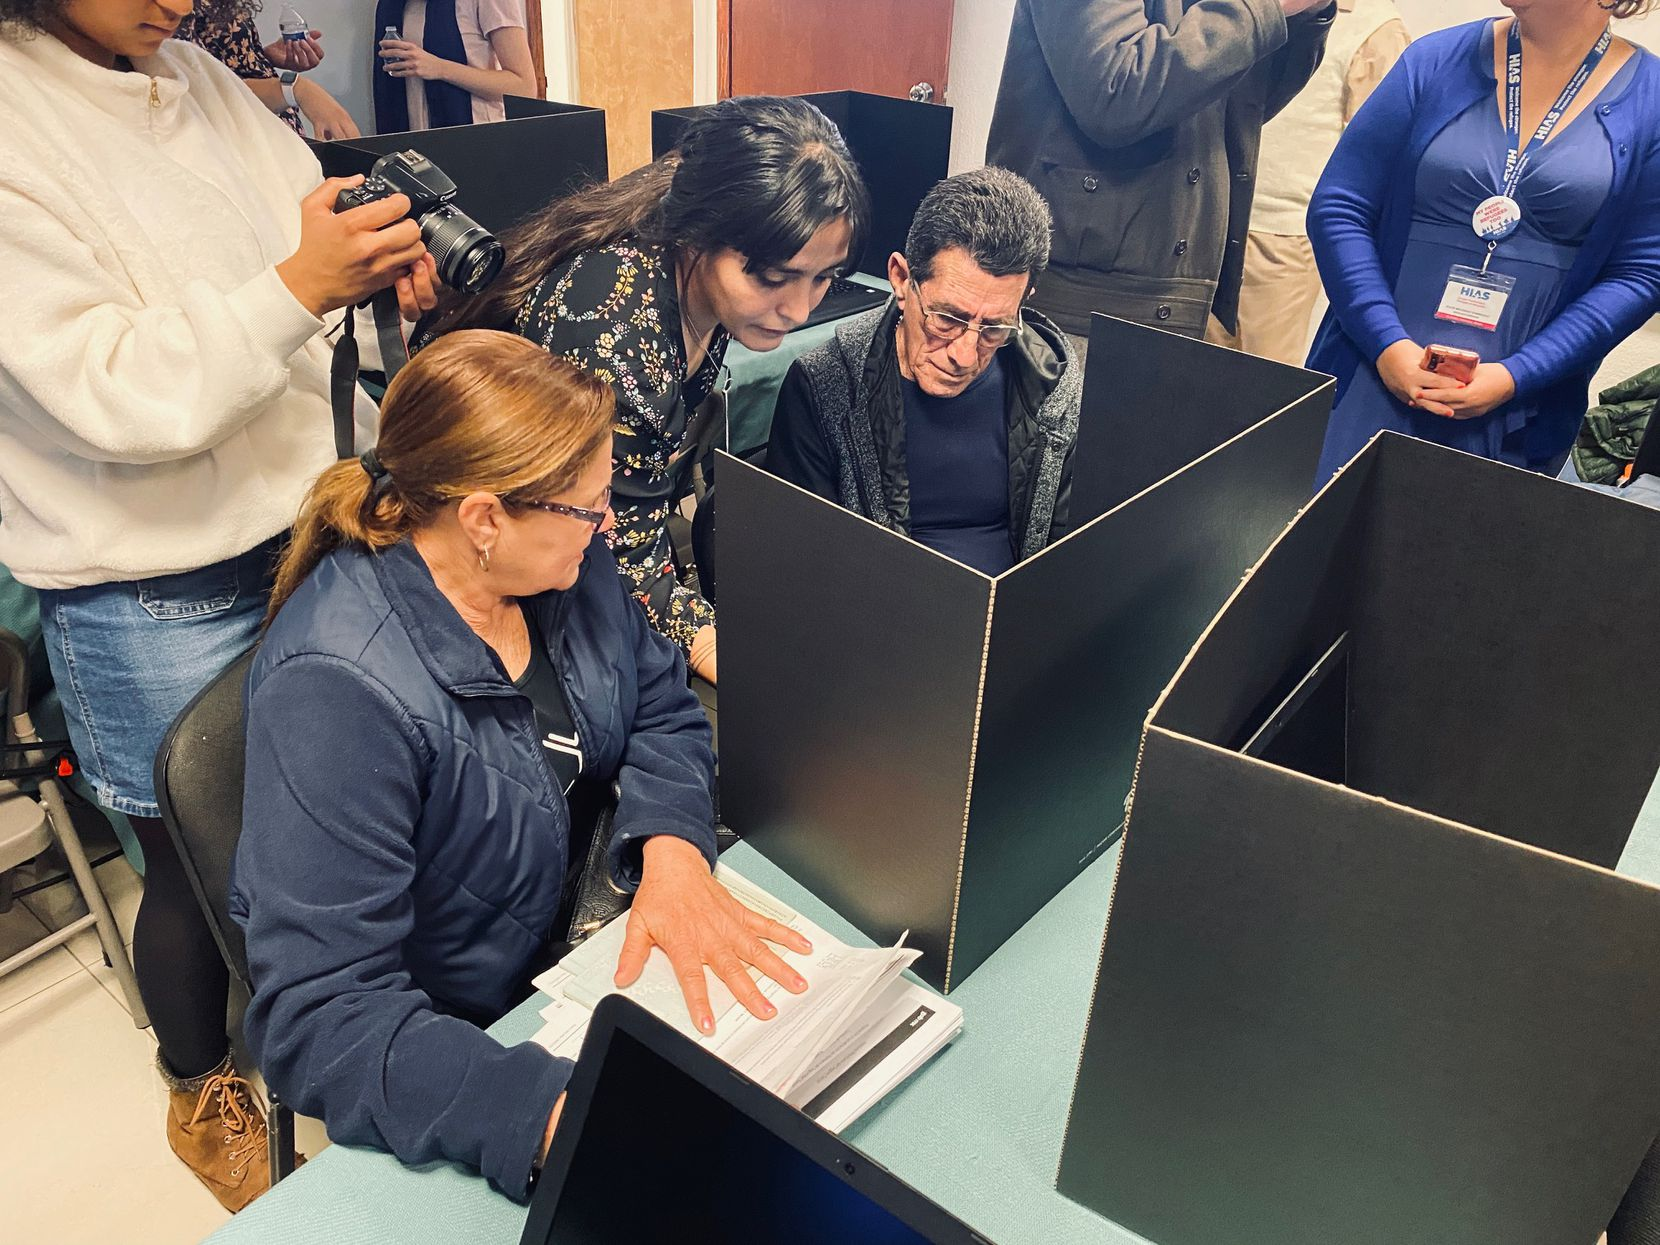 A legal worker helped asylum seekers Ramón Piniero Alvarez and his wife, Mirta Matilde Alvarez, sign on to a computer to seek legal assistance from a U.S.-based attorney Tuesday in Ciudad Juarez, Mexico.